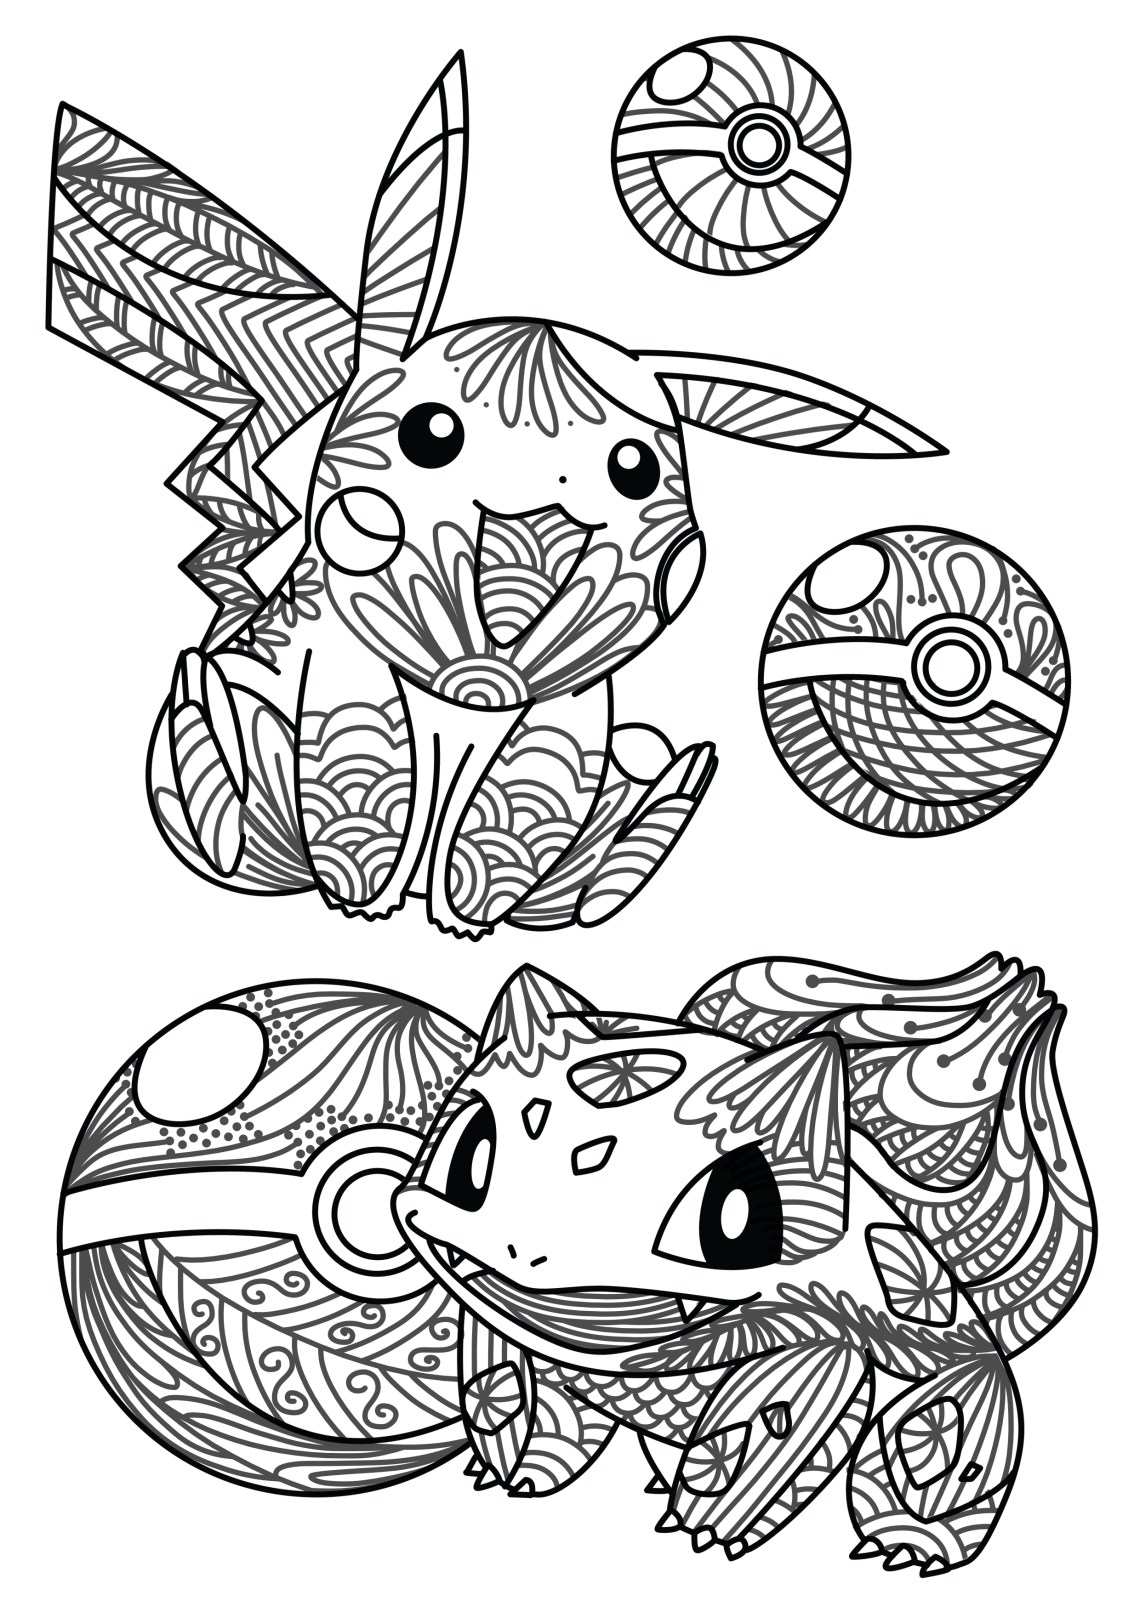 You caught it! Free Pokemon Adult Coloring Sheet – Craft ... | fun printable coloring pages for adults